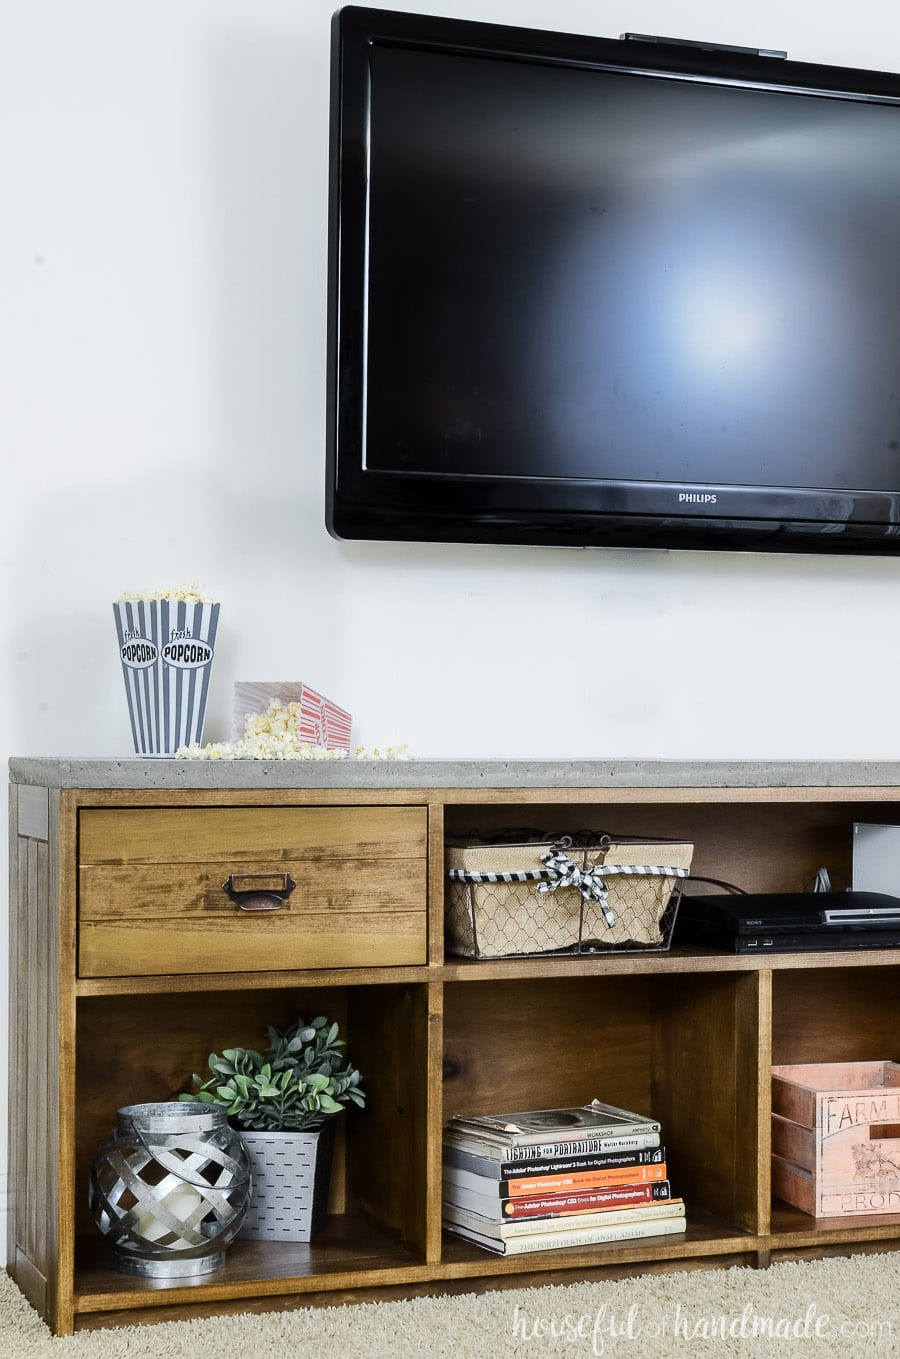 Televison mounted on the wall above a warm brown rustic TV stand with concrete top. Showing open shelving with books and decor items inside.